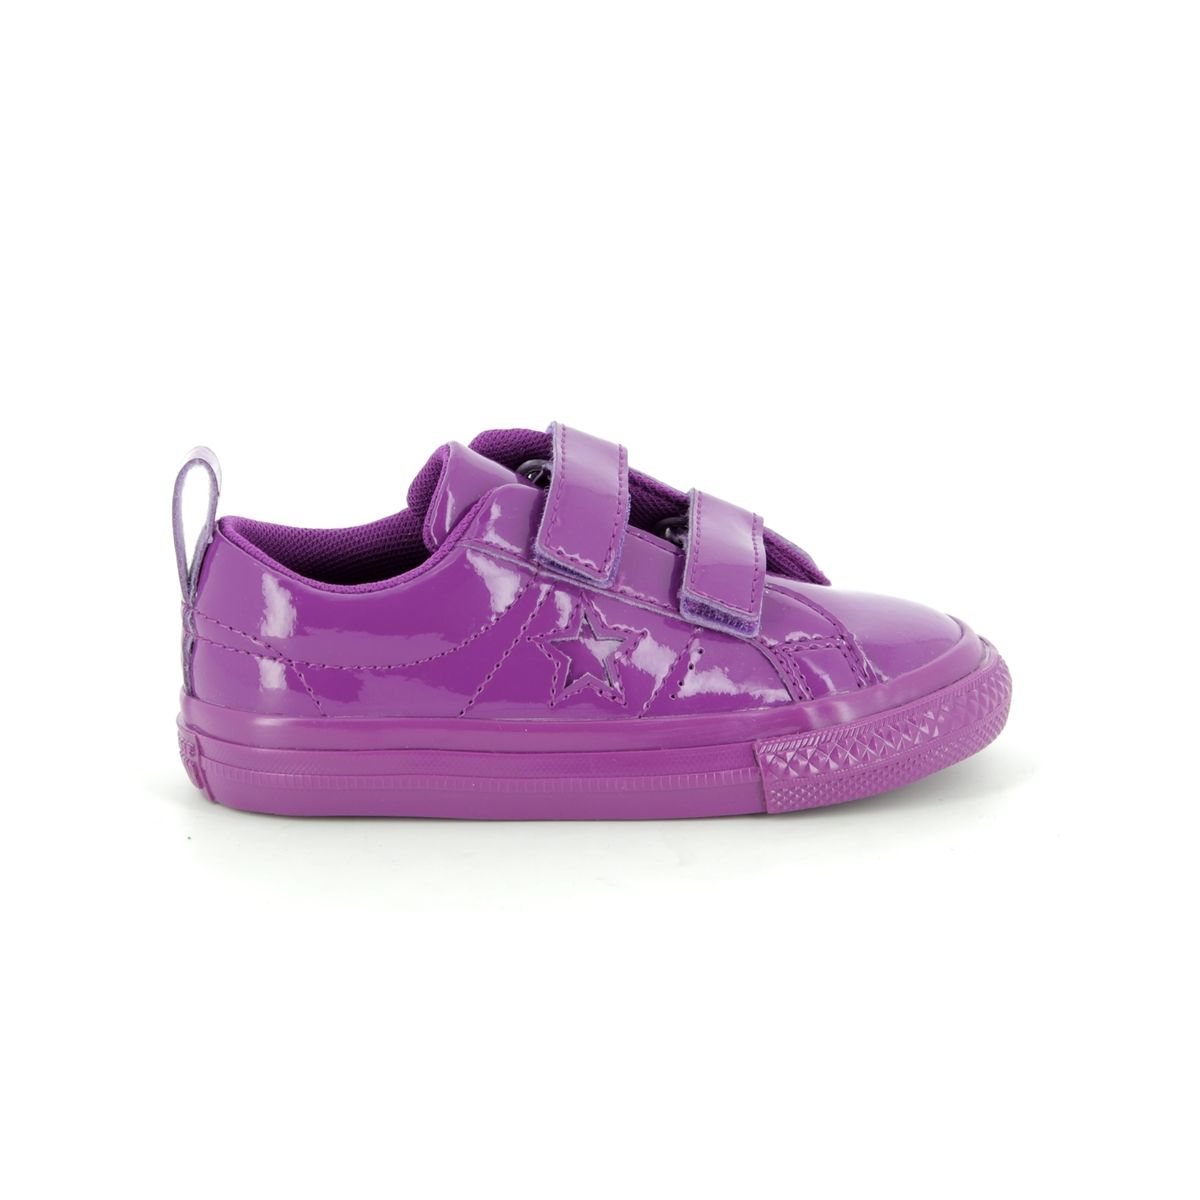 cceebc914485 Converse Trainers - Purple - 762523C ONESTAR VEL IN